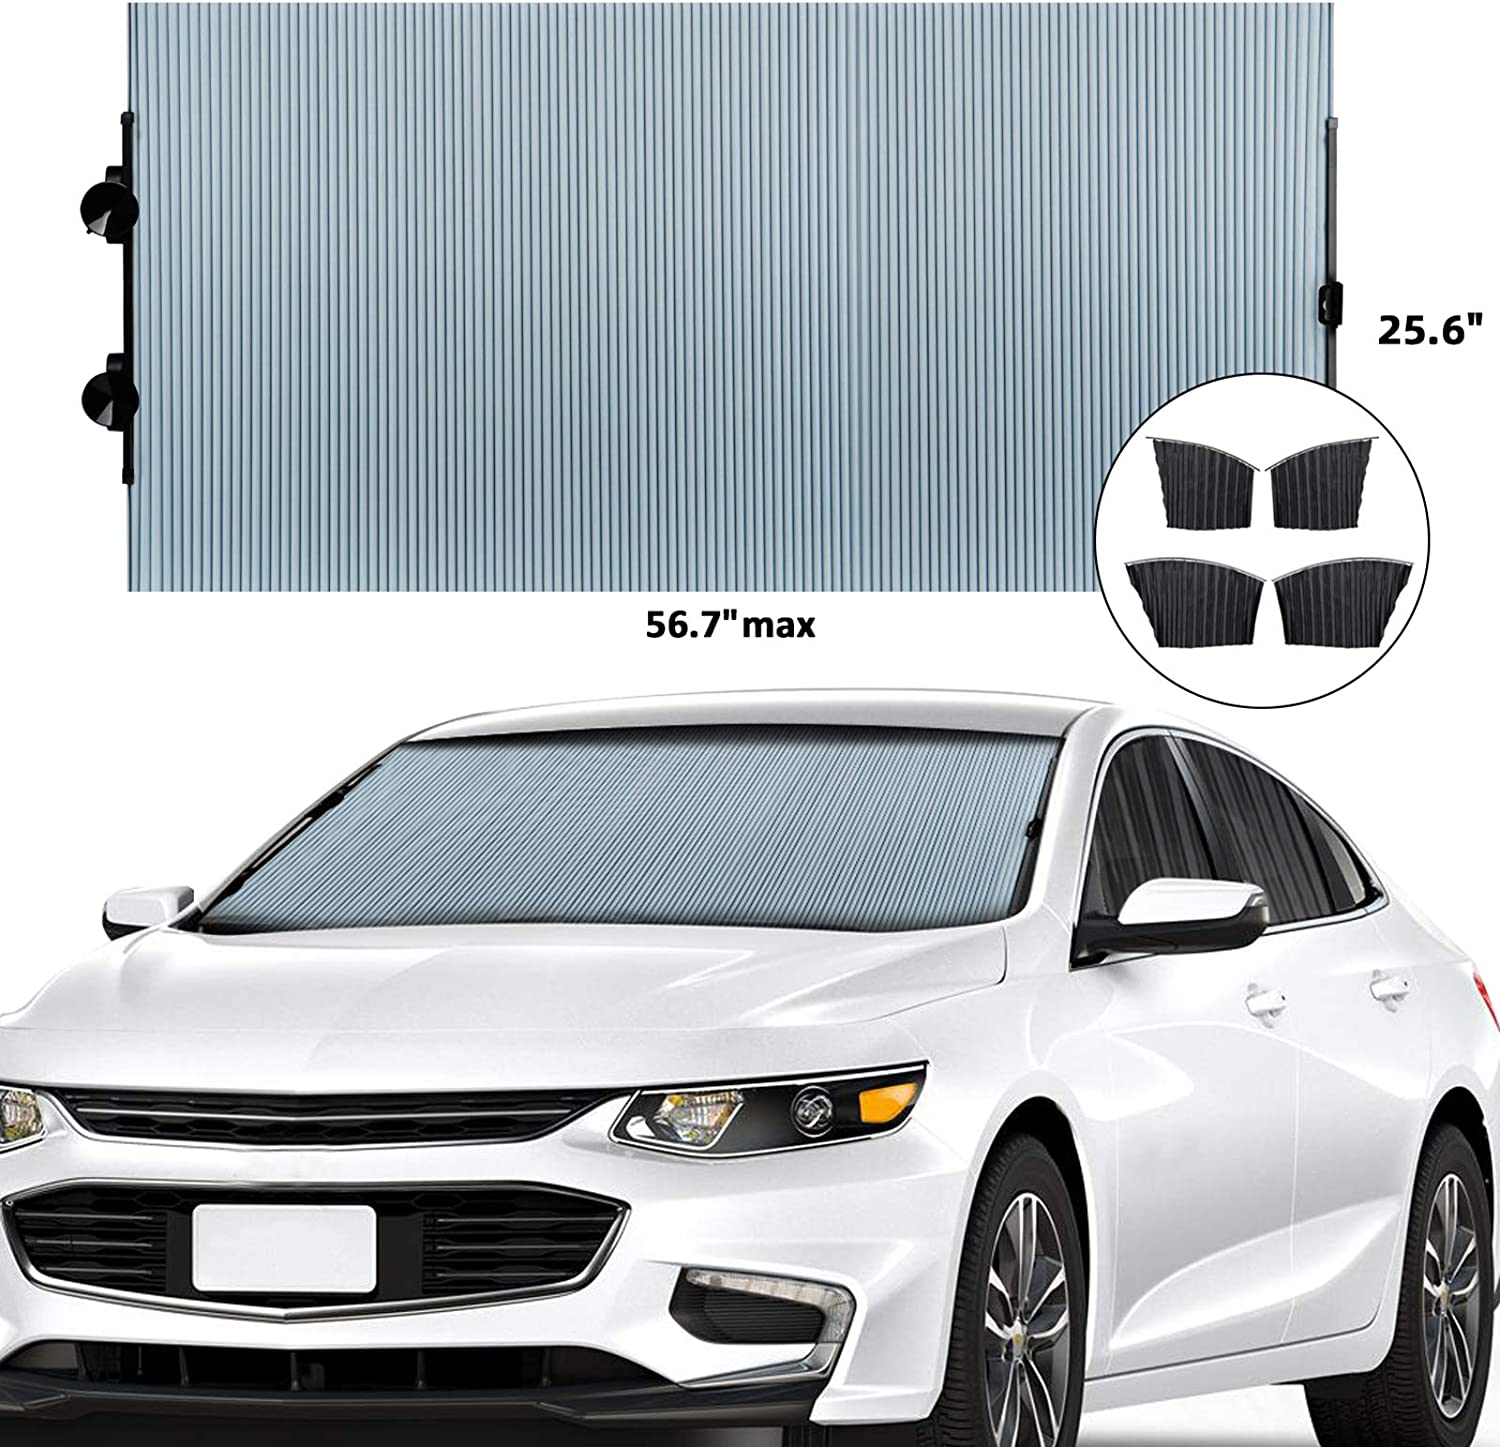 EcoNour Retractable Car Windshield Sunshade Fits Various Models with Suction Cups Blocks UV Rays Sun Visor Protector Universal Sunshade to Keep Your Vehicle Cool and Damage Free